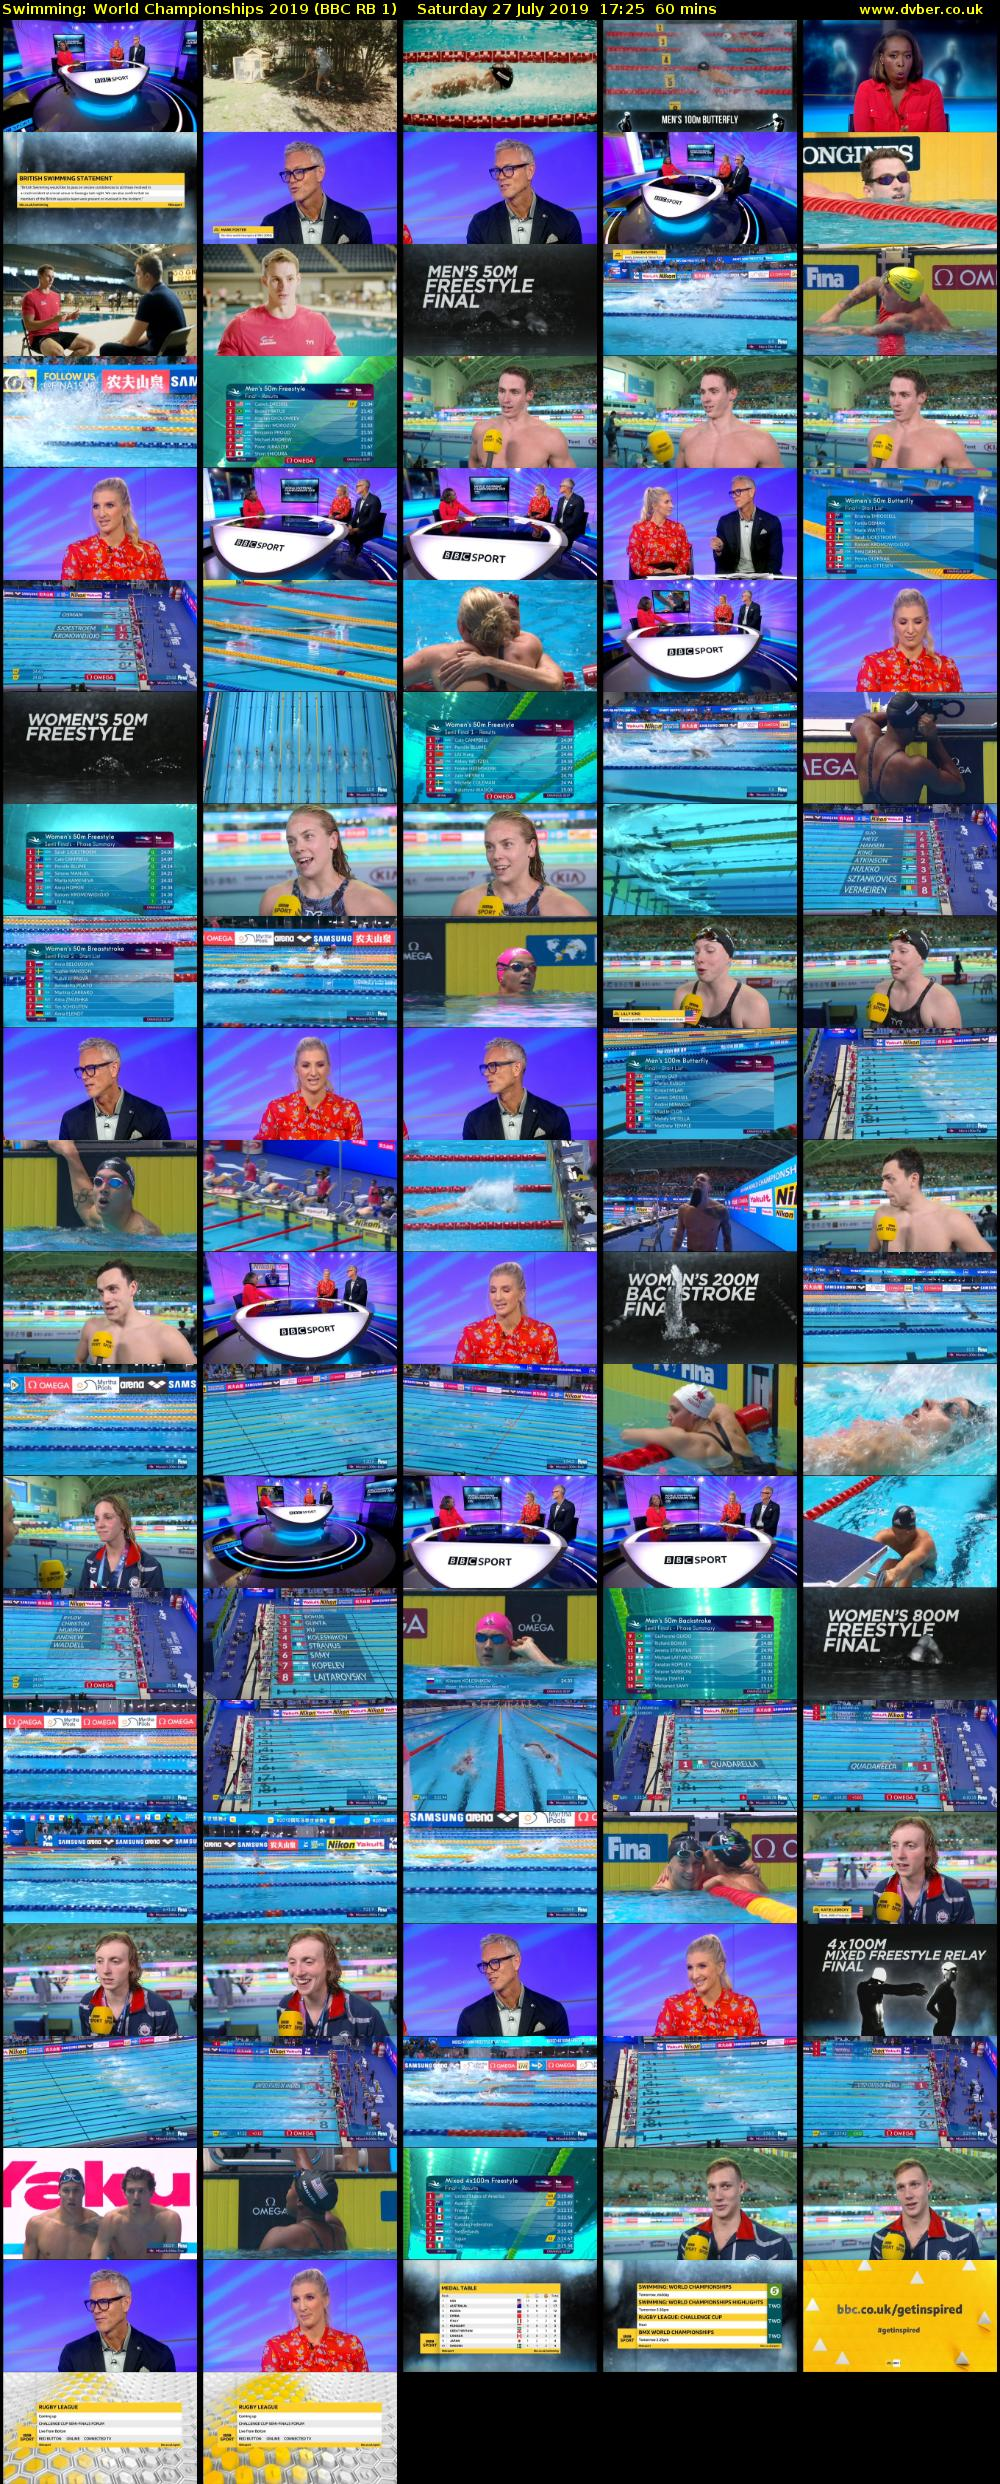 Swimming: World Championships 2019 (BBC RB 1) Saturday 27 July 2019 17:25 - 18:25